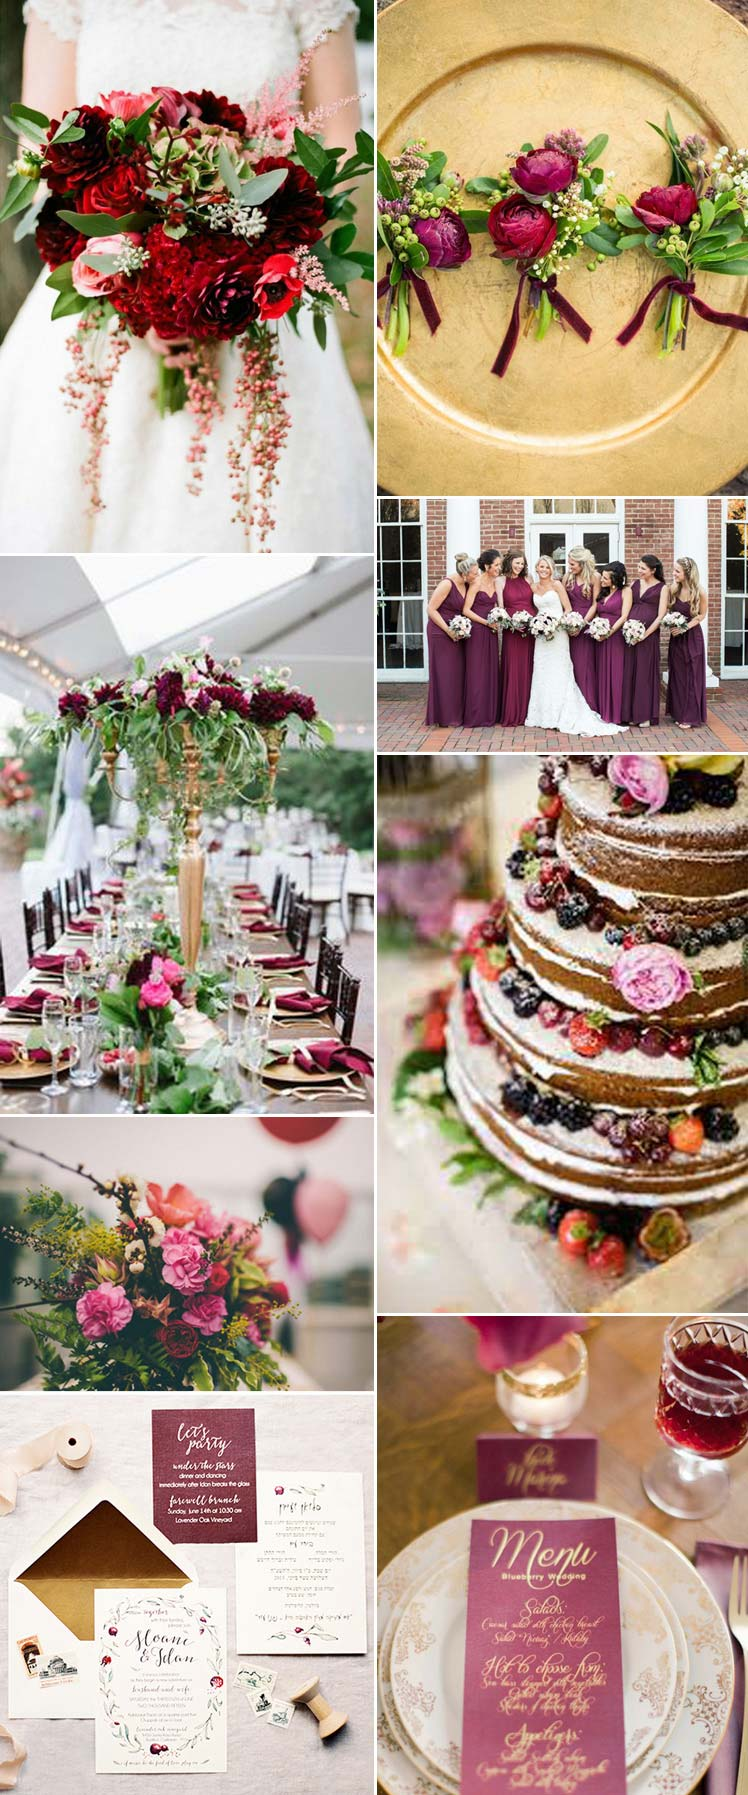 Inspiration for a berry wedding day theme